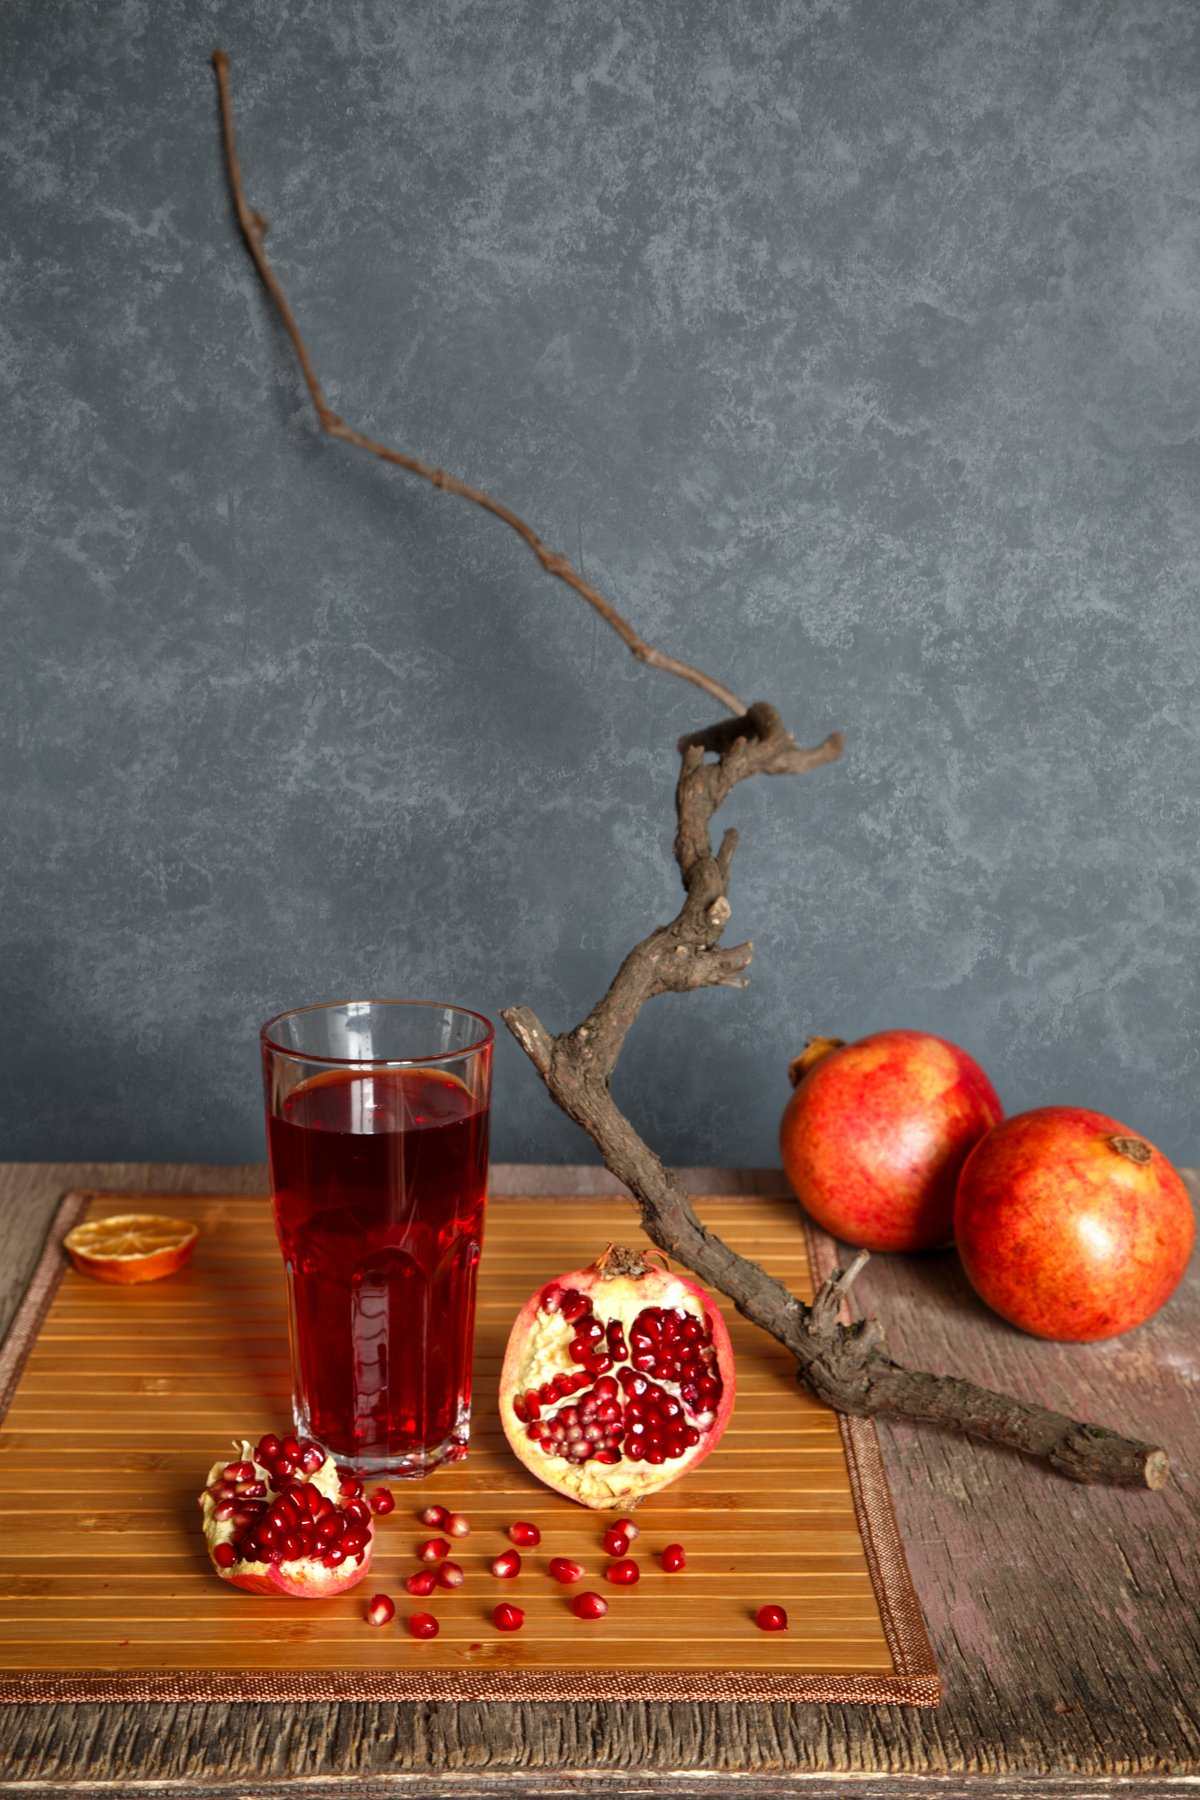 pomegranate, juice, ripe, red, fruit, glass, food, healthy, sweet, organic, juicy, seed, background, wooden, nature,  tropical, fresh, ingredient, vegetarian, raw, closeup, table, nobody, view, drink, freshness, vitamin, pomegranate tree, Mindia Charkseliani